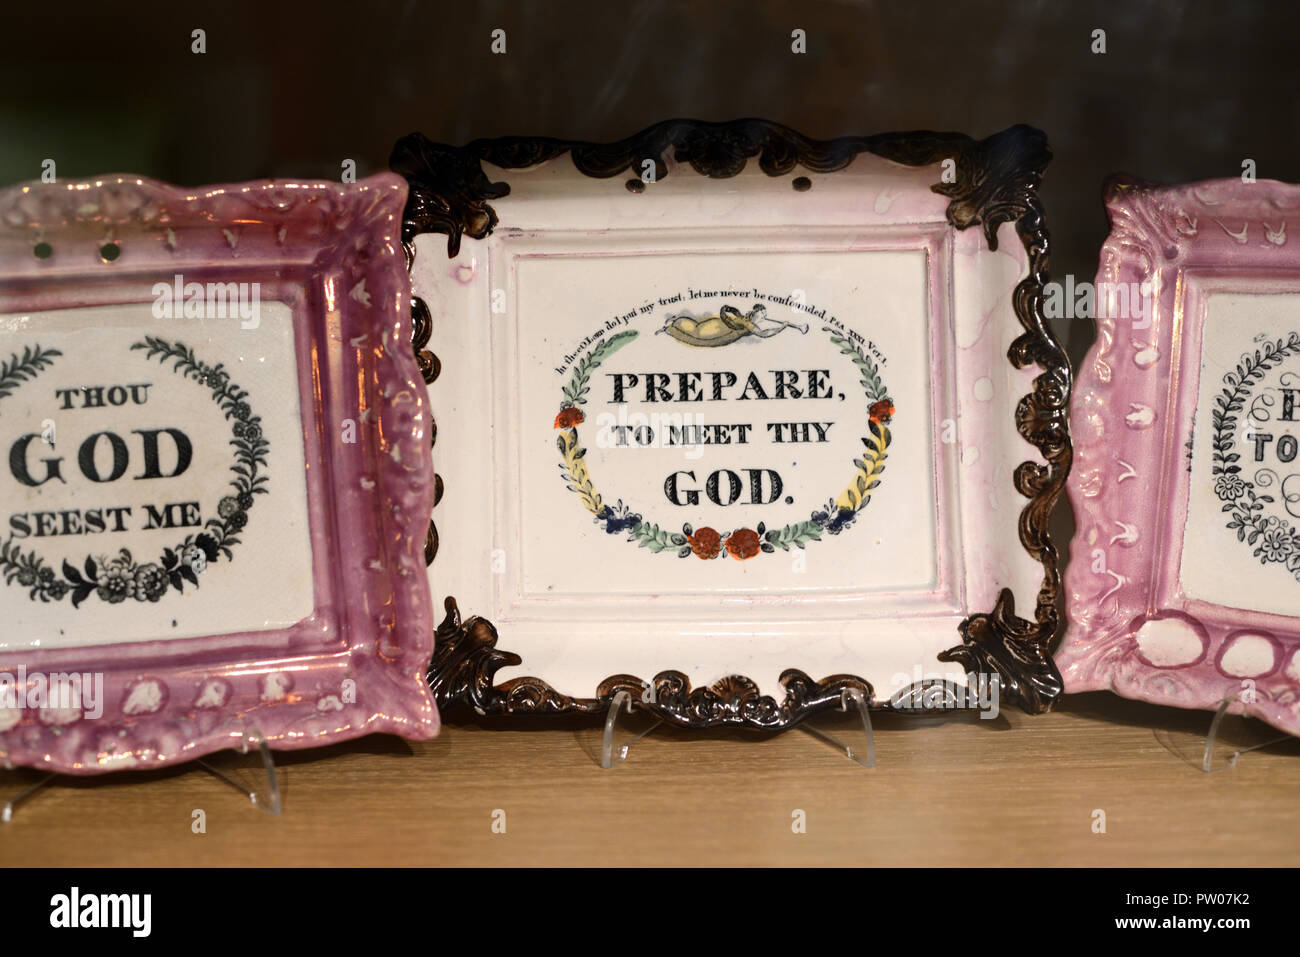 Display of Religious Ceramic Trays or Porcelain Tray with Slogan Prepare to Meet Thy God. Early c20th English Knick Knack or Bric-à-brac - Stock Image